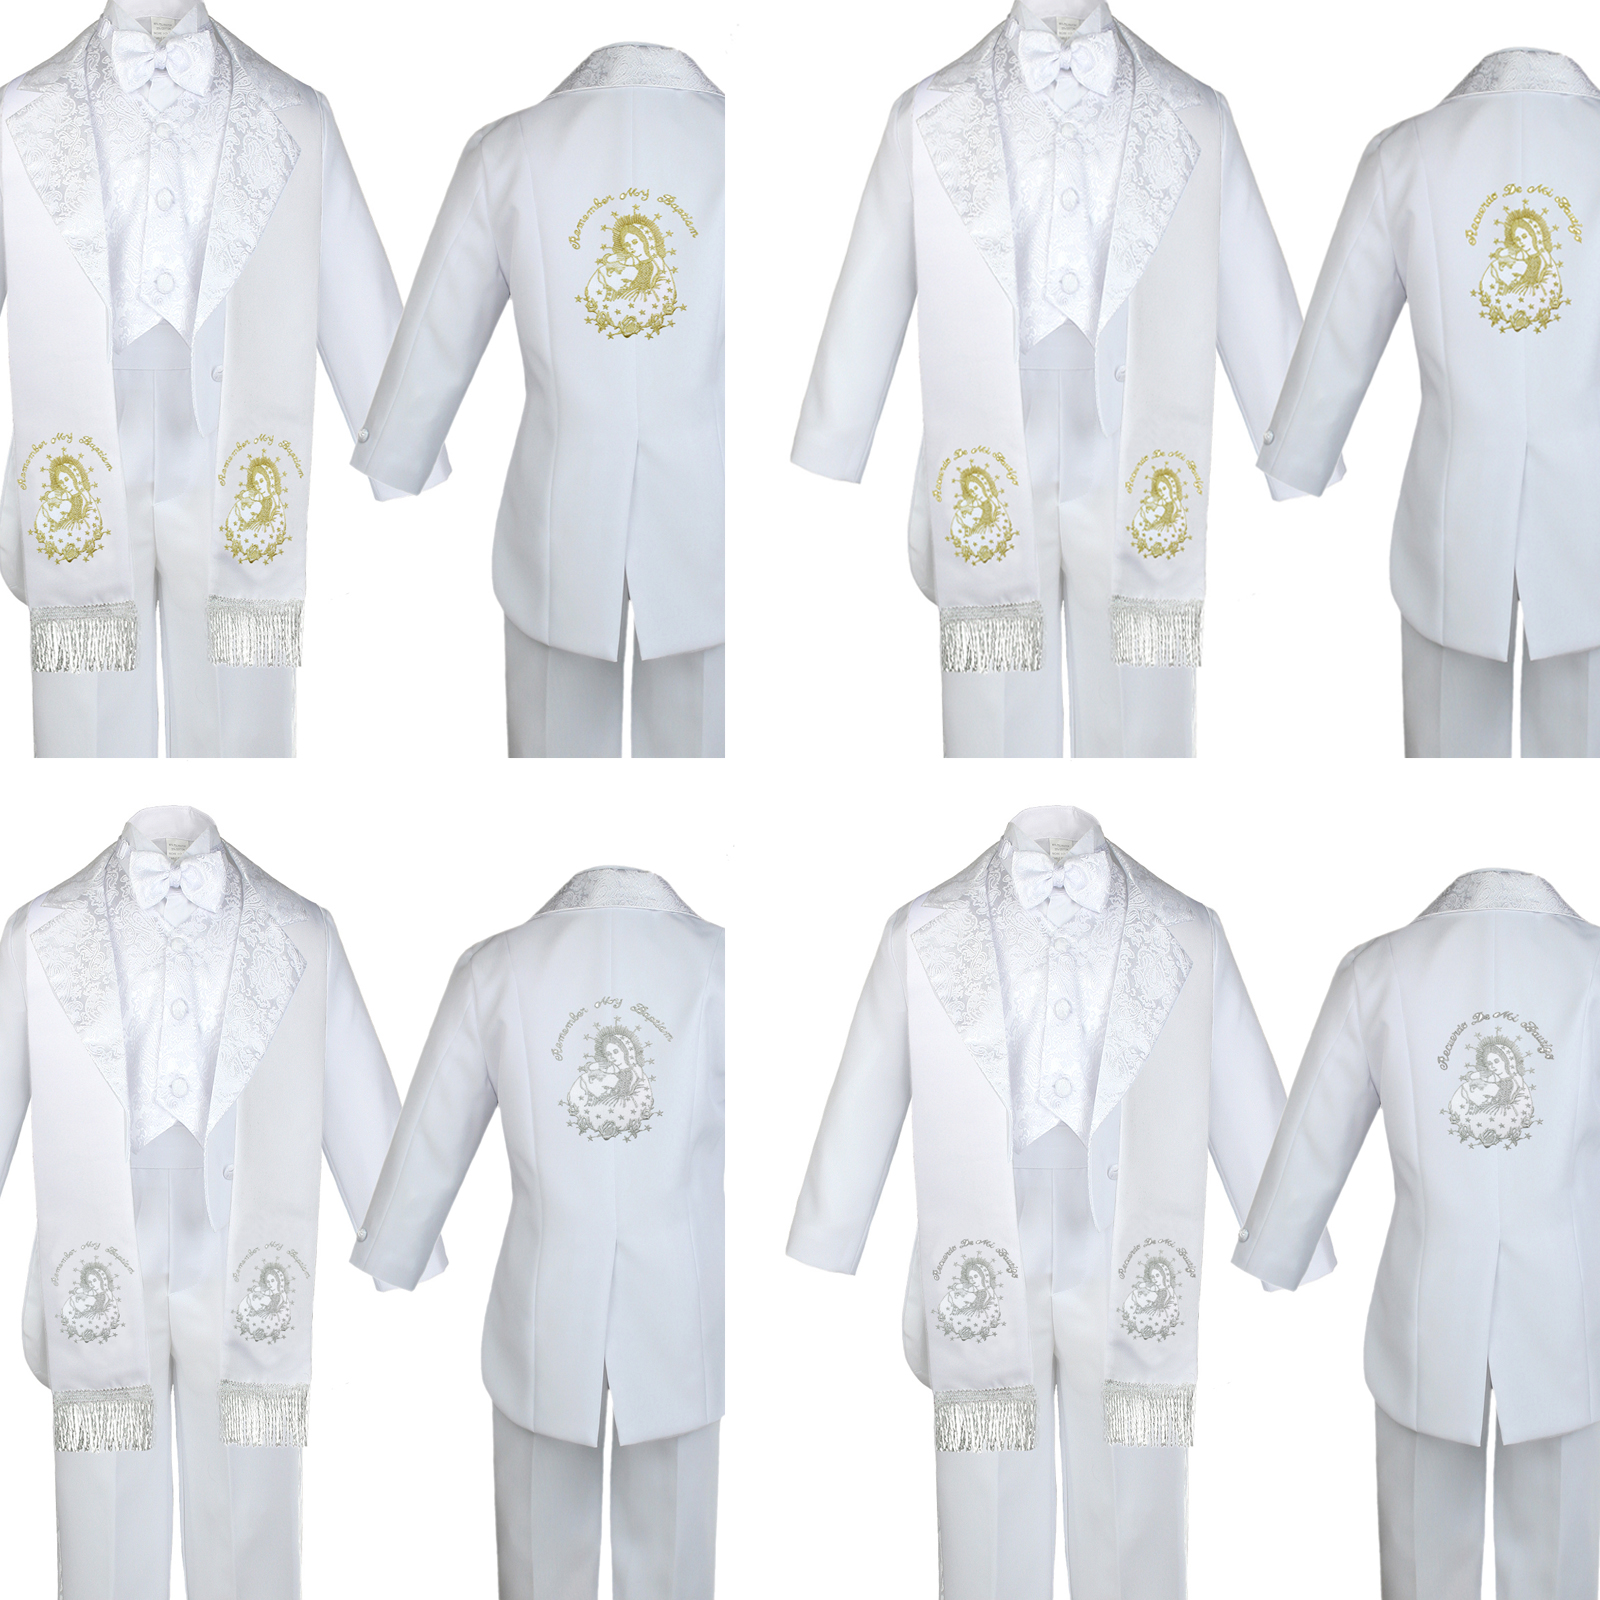 Boy Baby Baptism White Tuxedo Suit Embroidery Color Silver Maria Pope Stole Sm-7